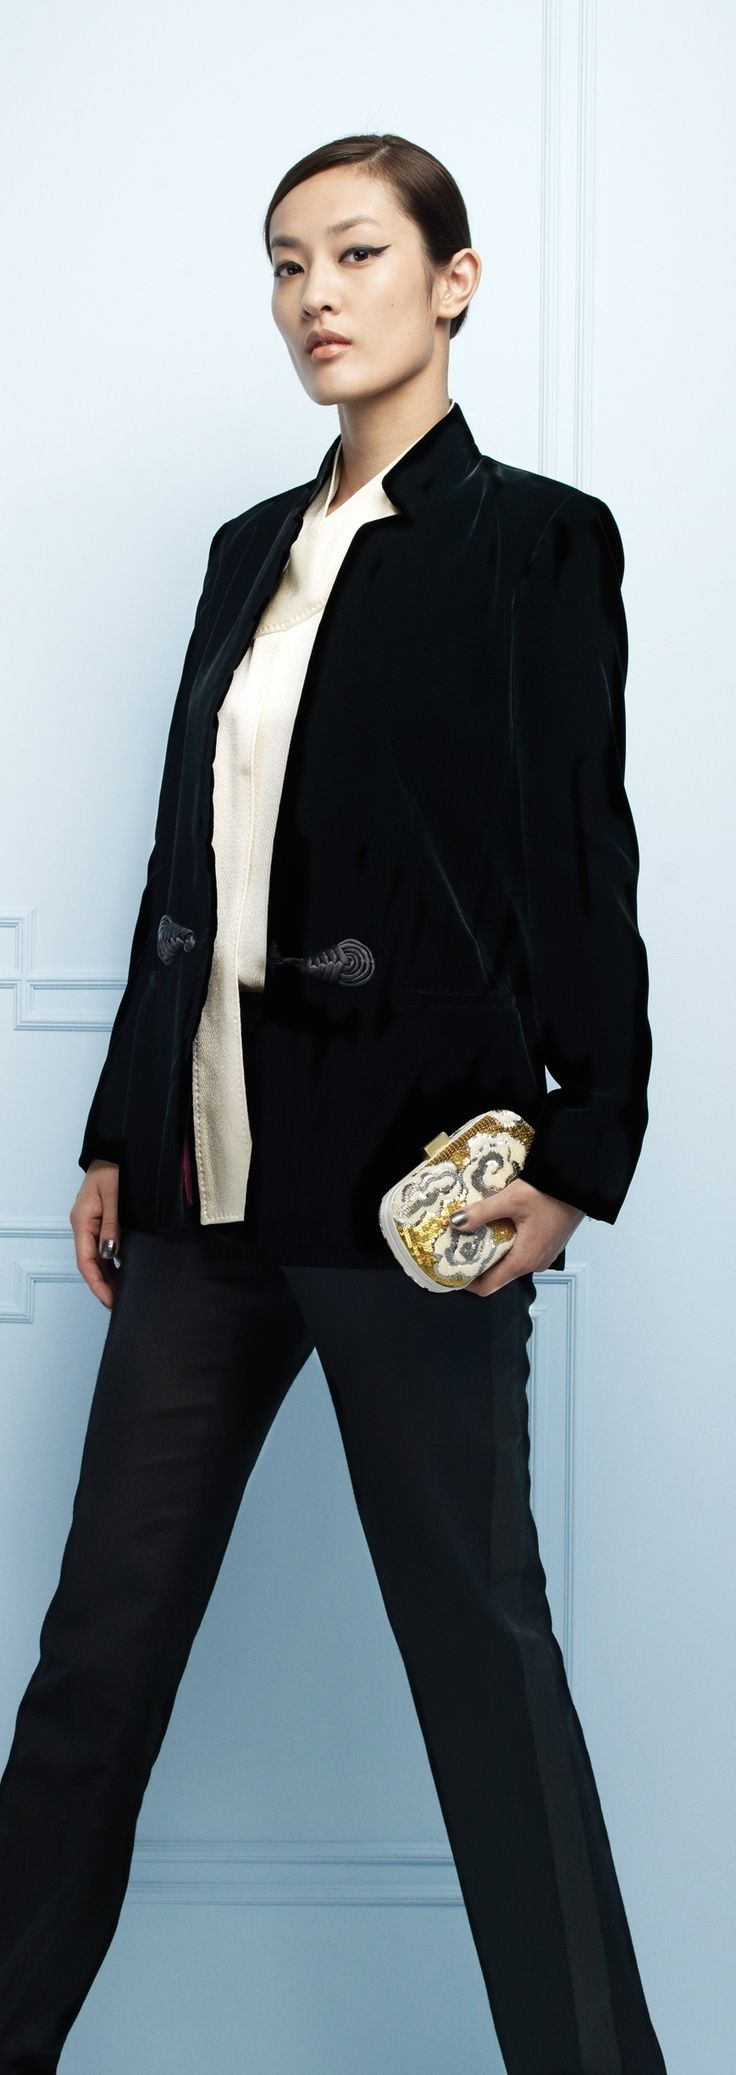 """b9c9832ae224aa Rayon-Velvet Jacket with Chinese Knot Closure / Silk Hammer Satin Long  Sleeves Tie Blouse / Wool Blend Tuxedo Trousers / Beaded """"Cloud"""" Clutch"""